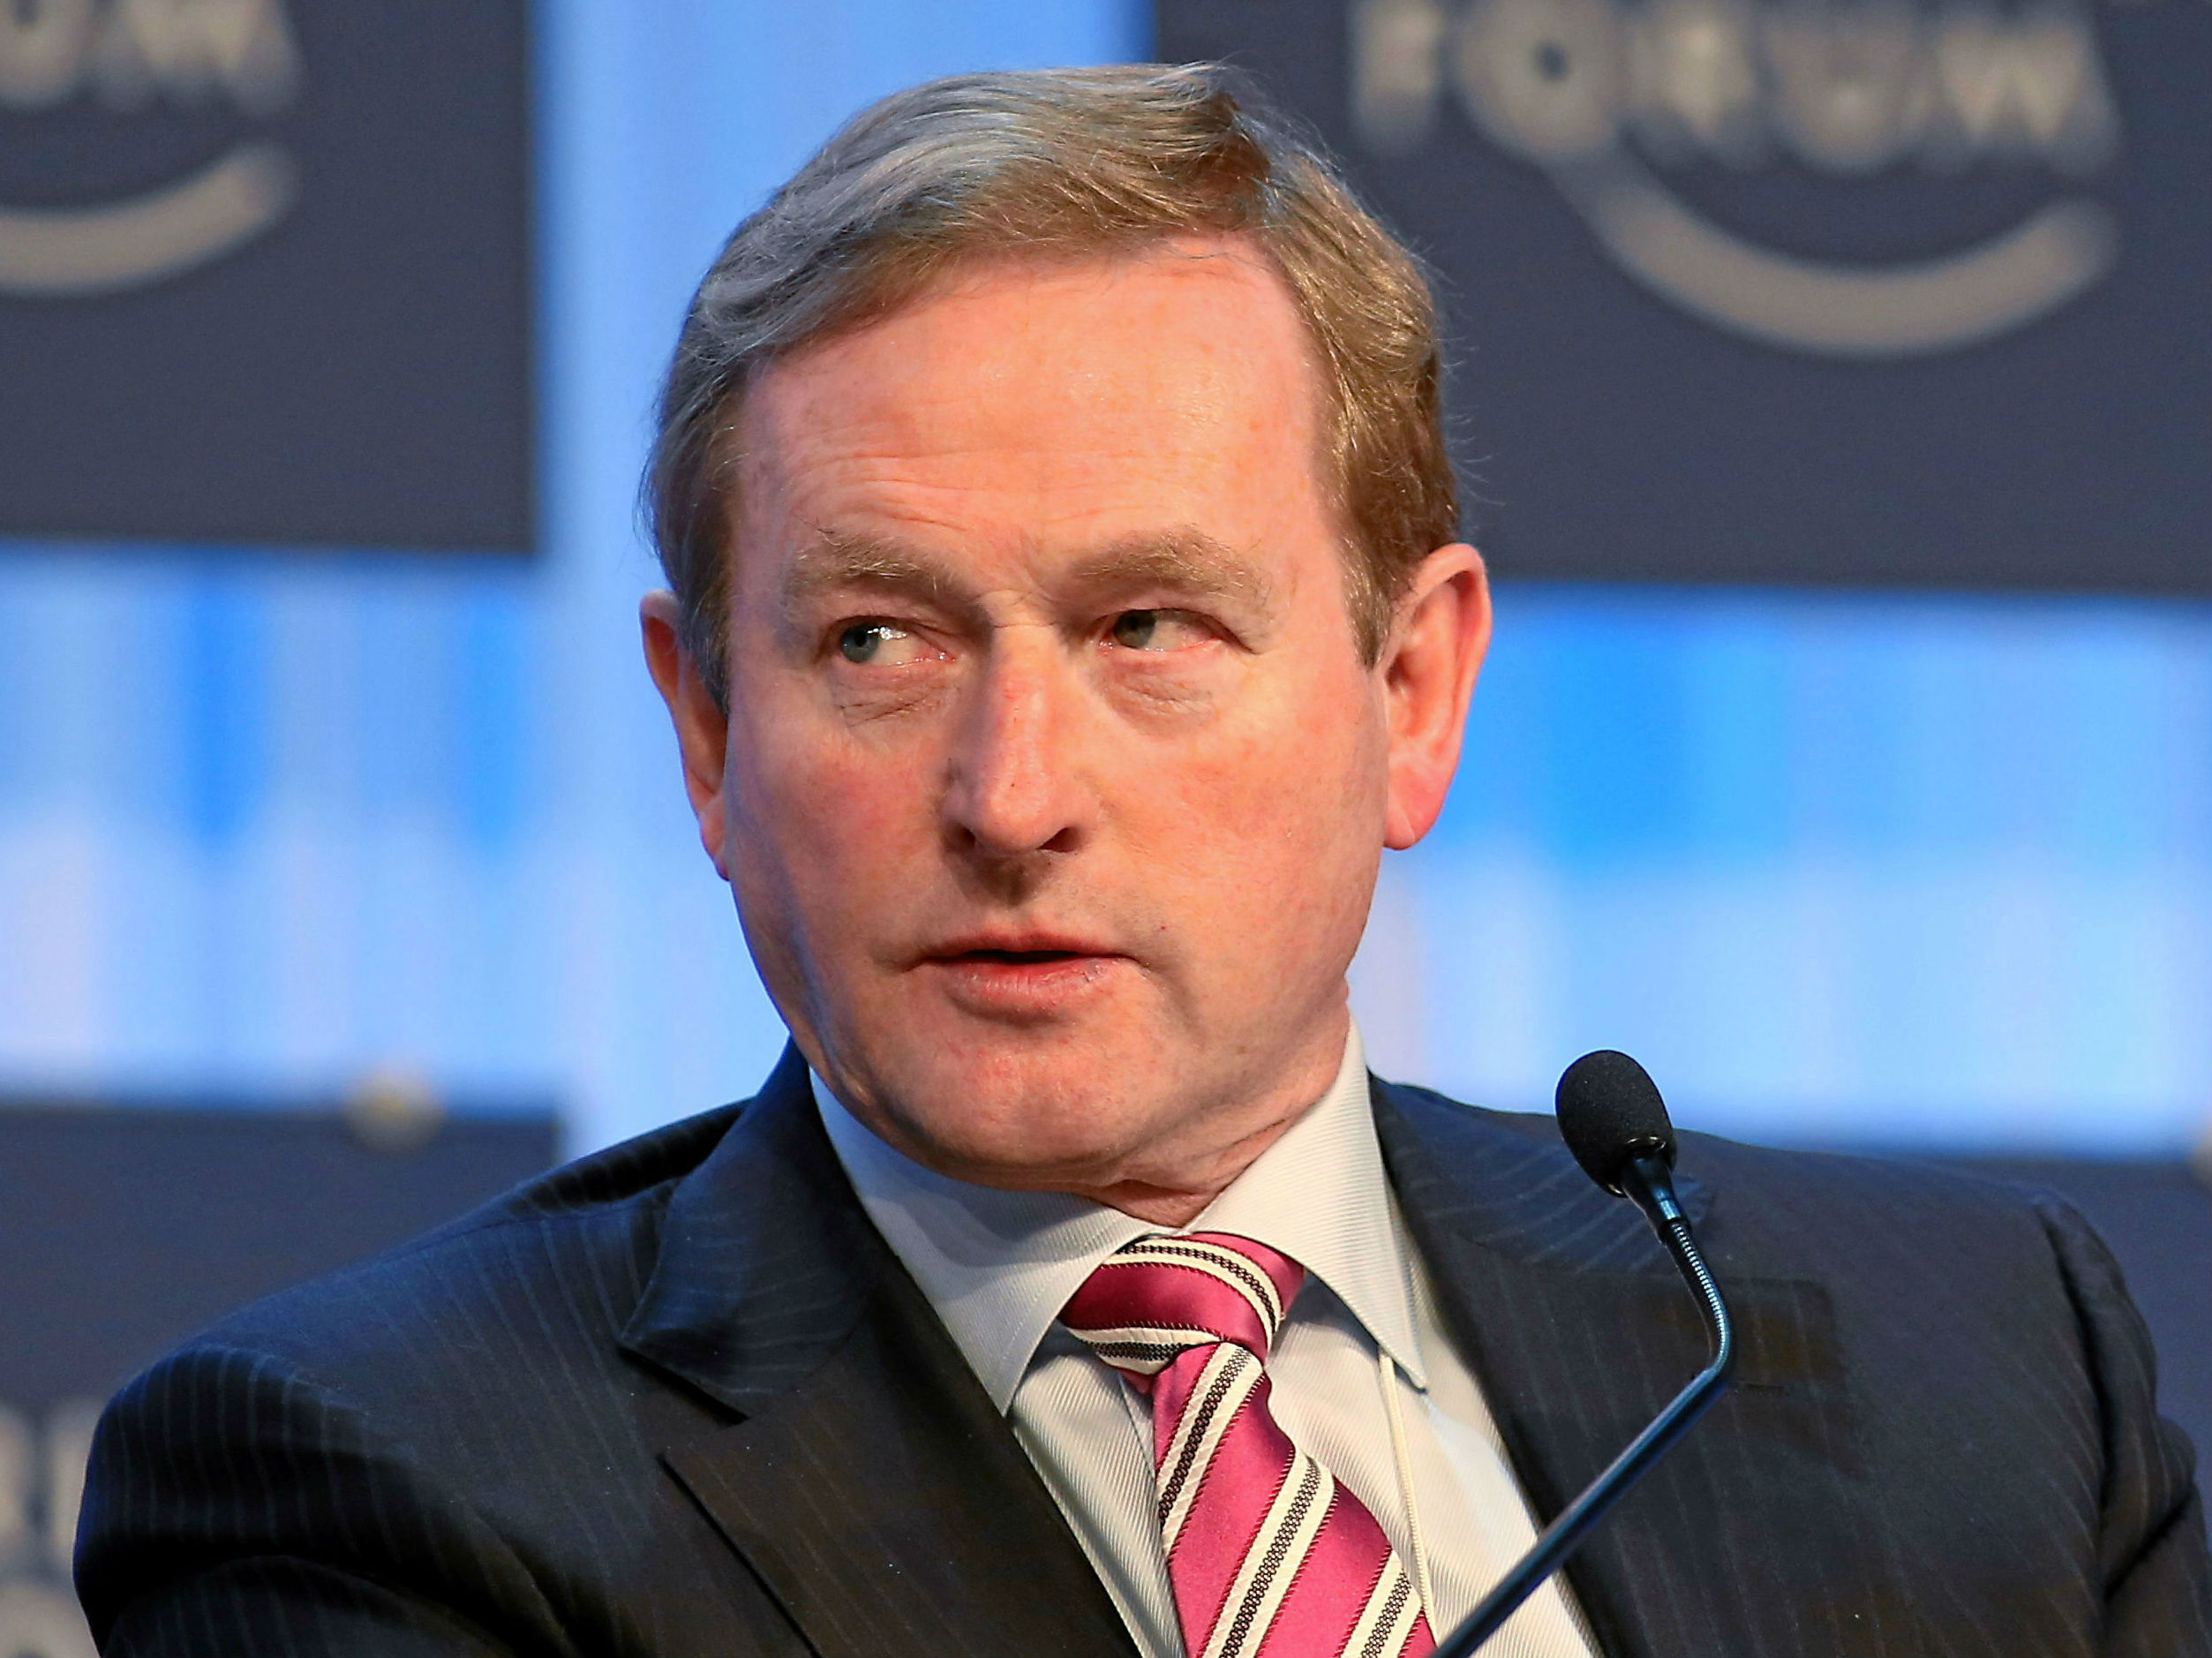 Enda Kenny's To Meet The Pope